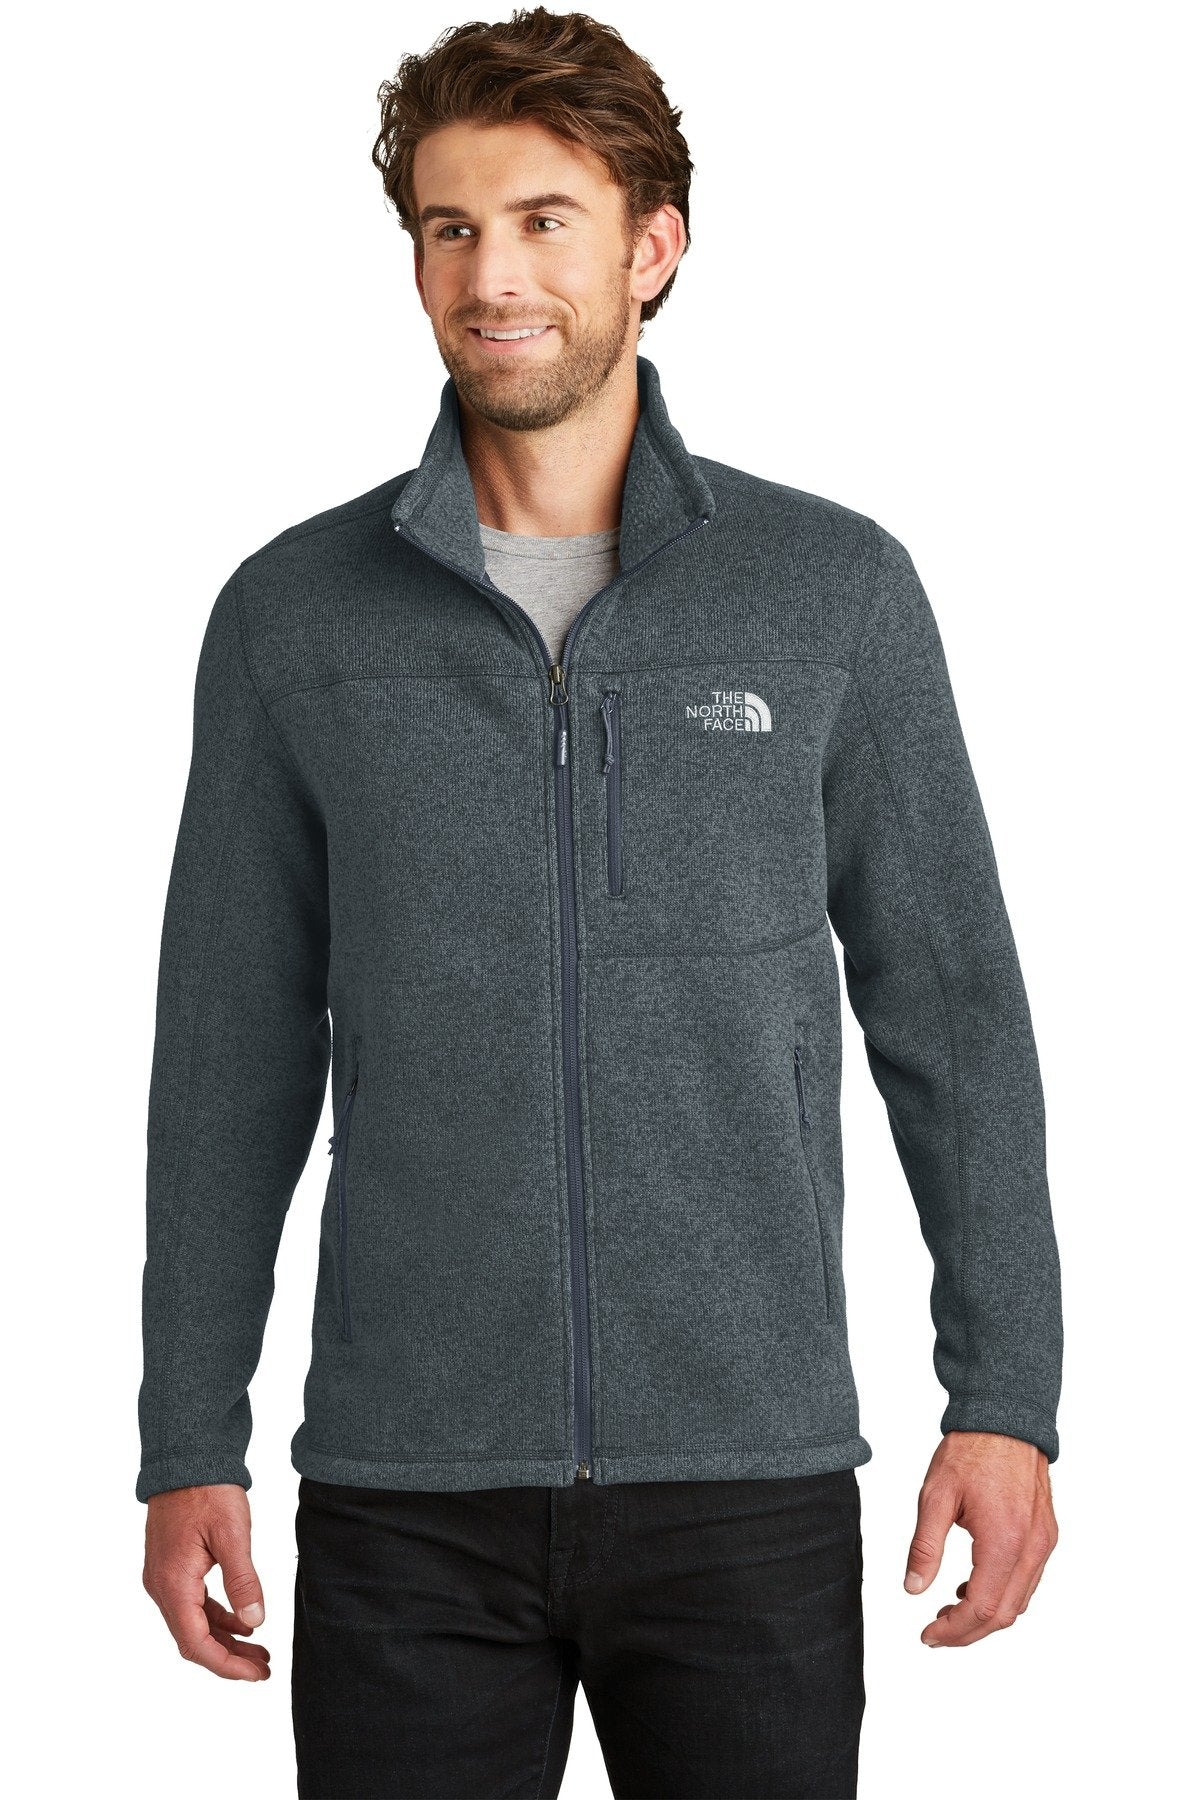 Urban Navy Heather - The North Face NF0A3LH7